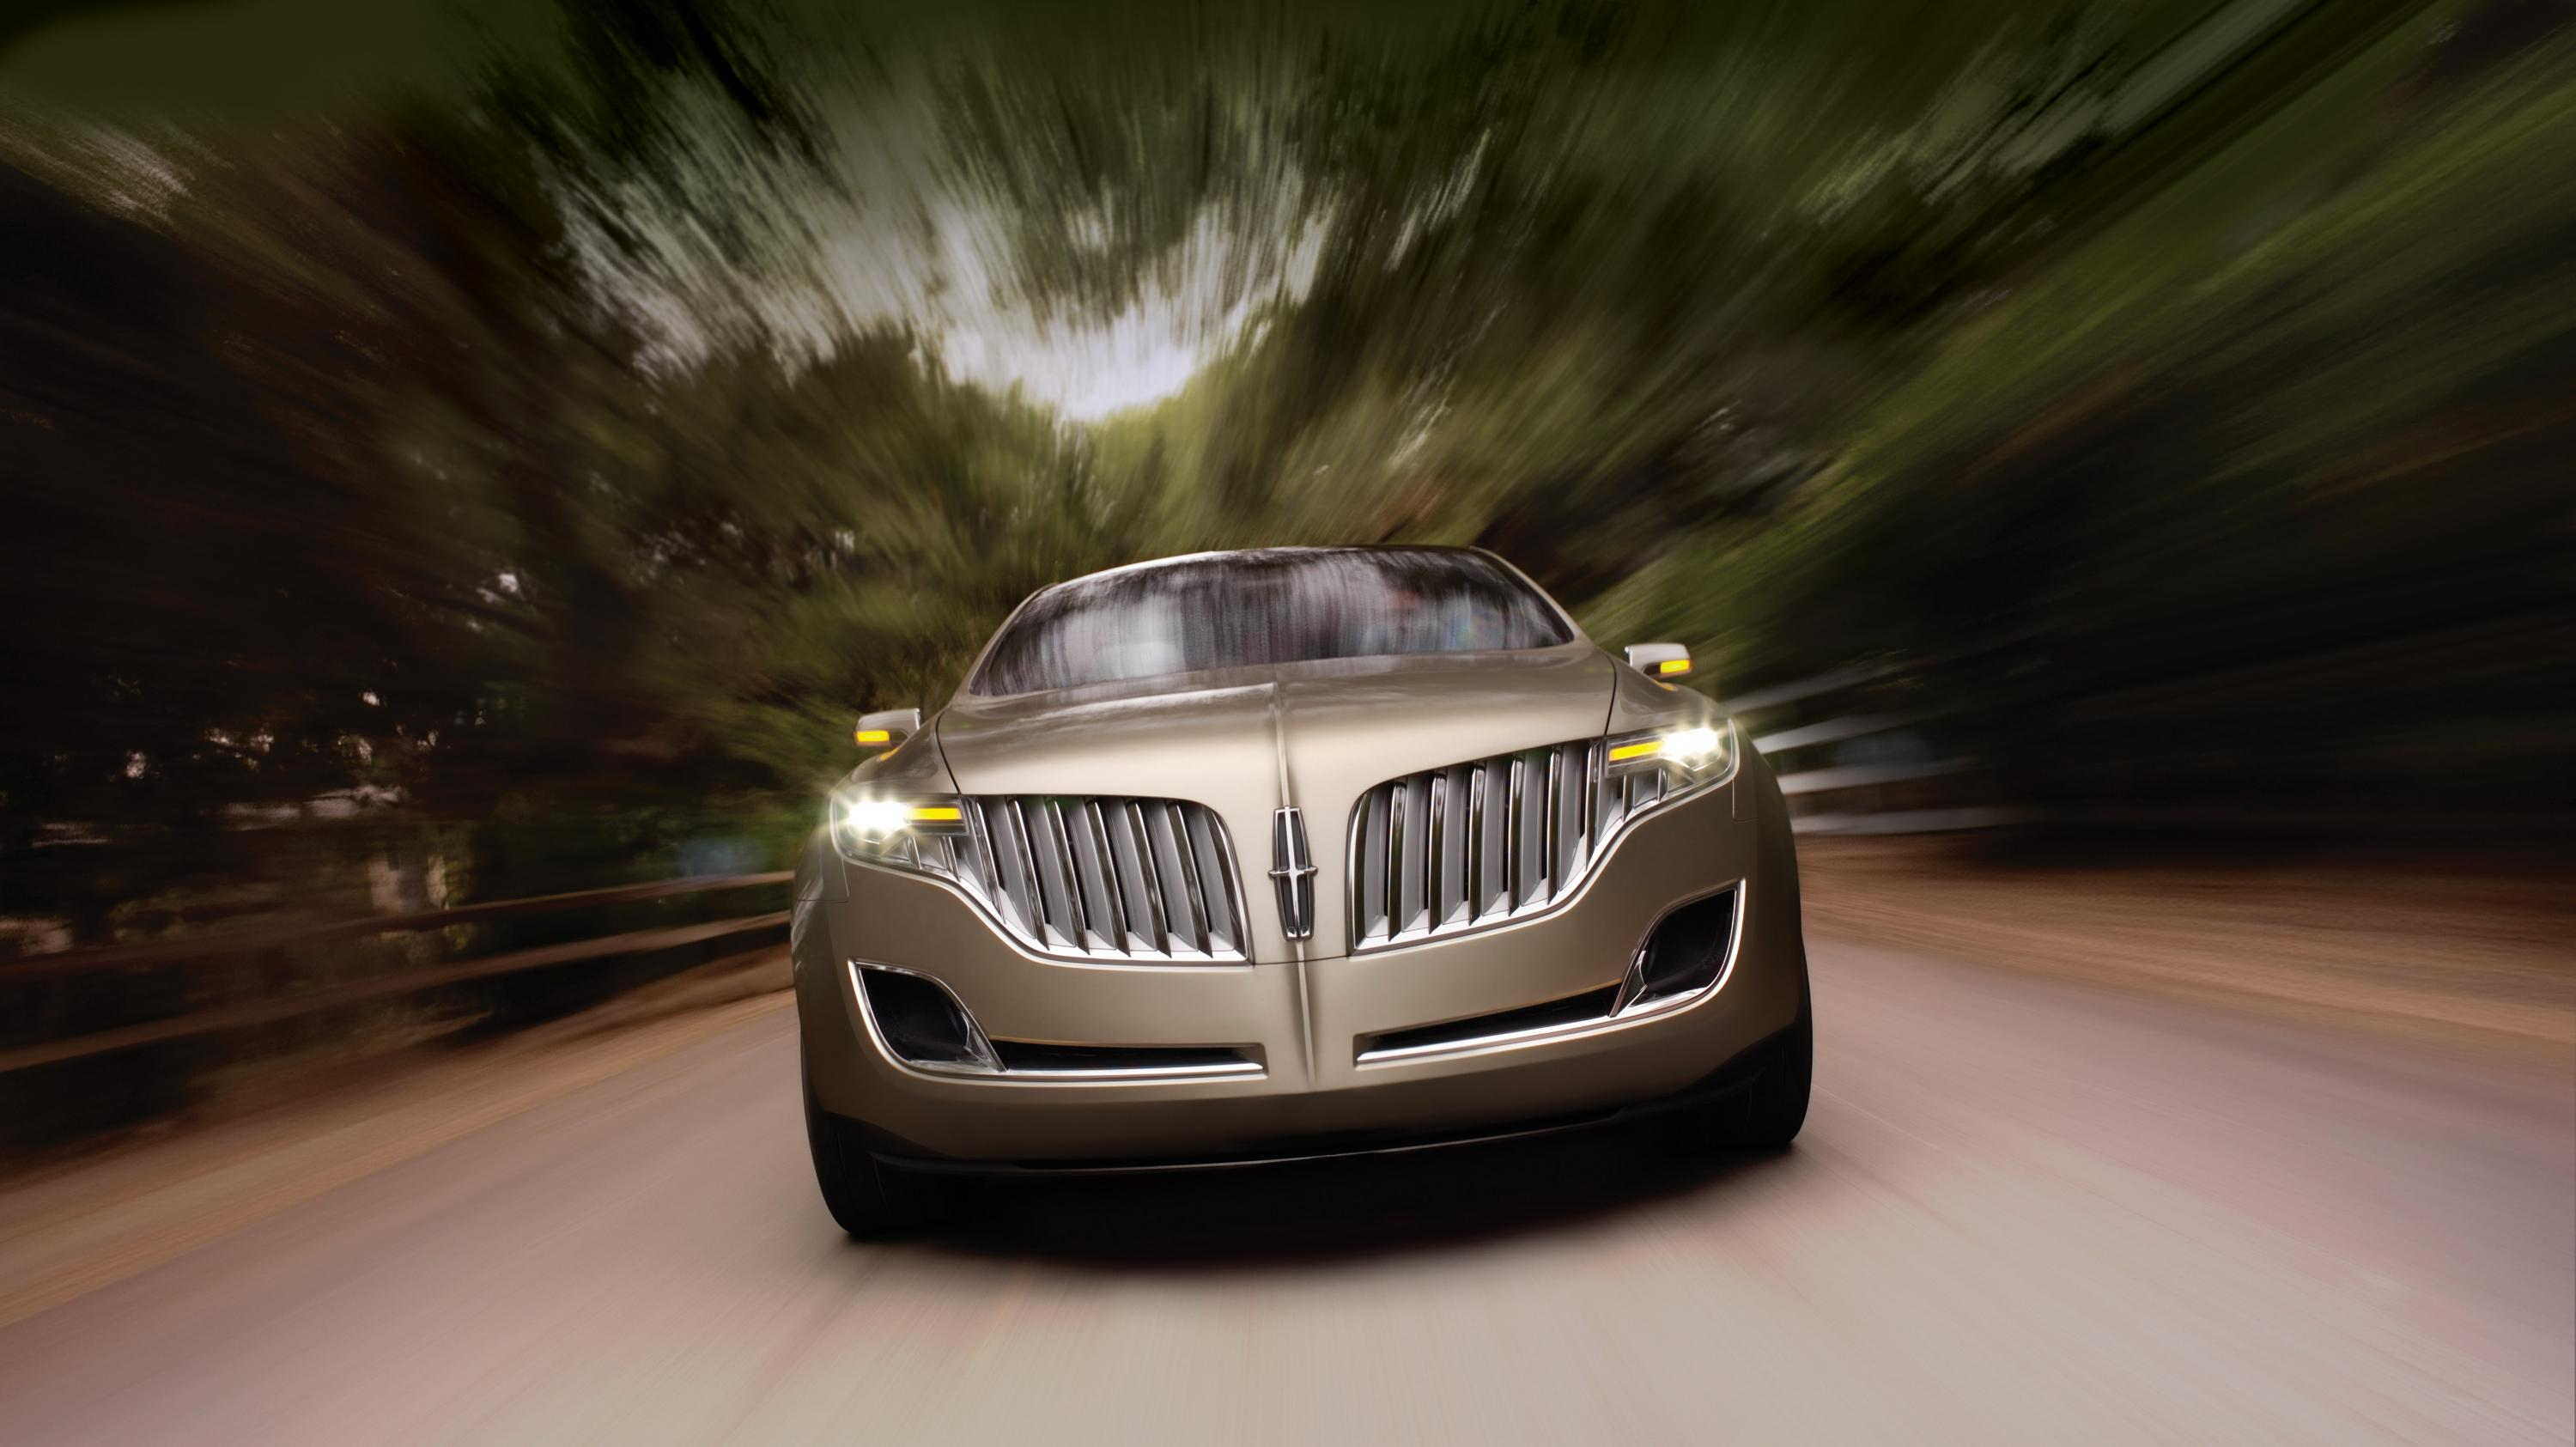 2008 Lincoln MKT | Top Speed